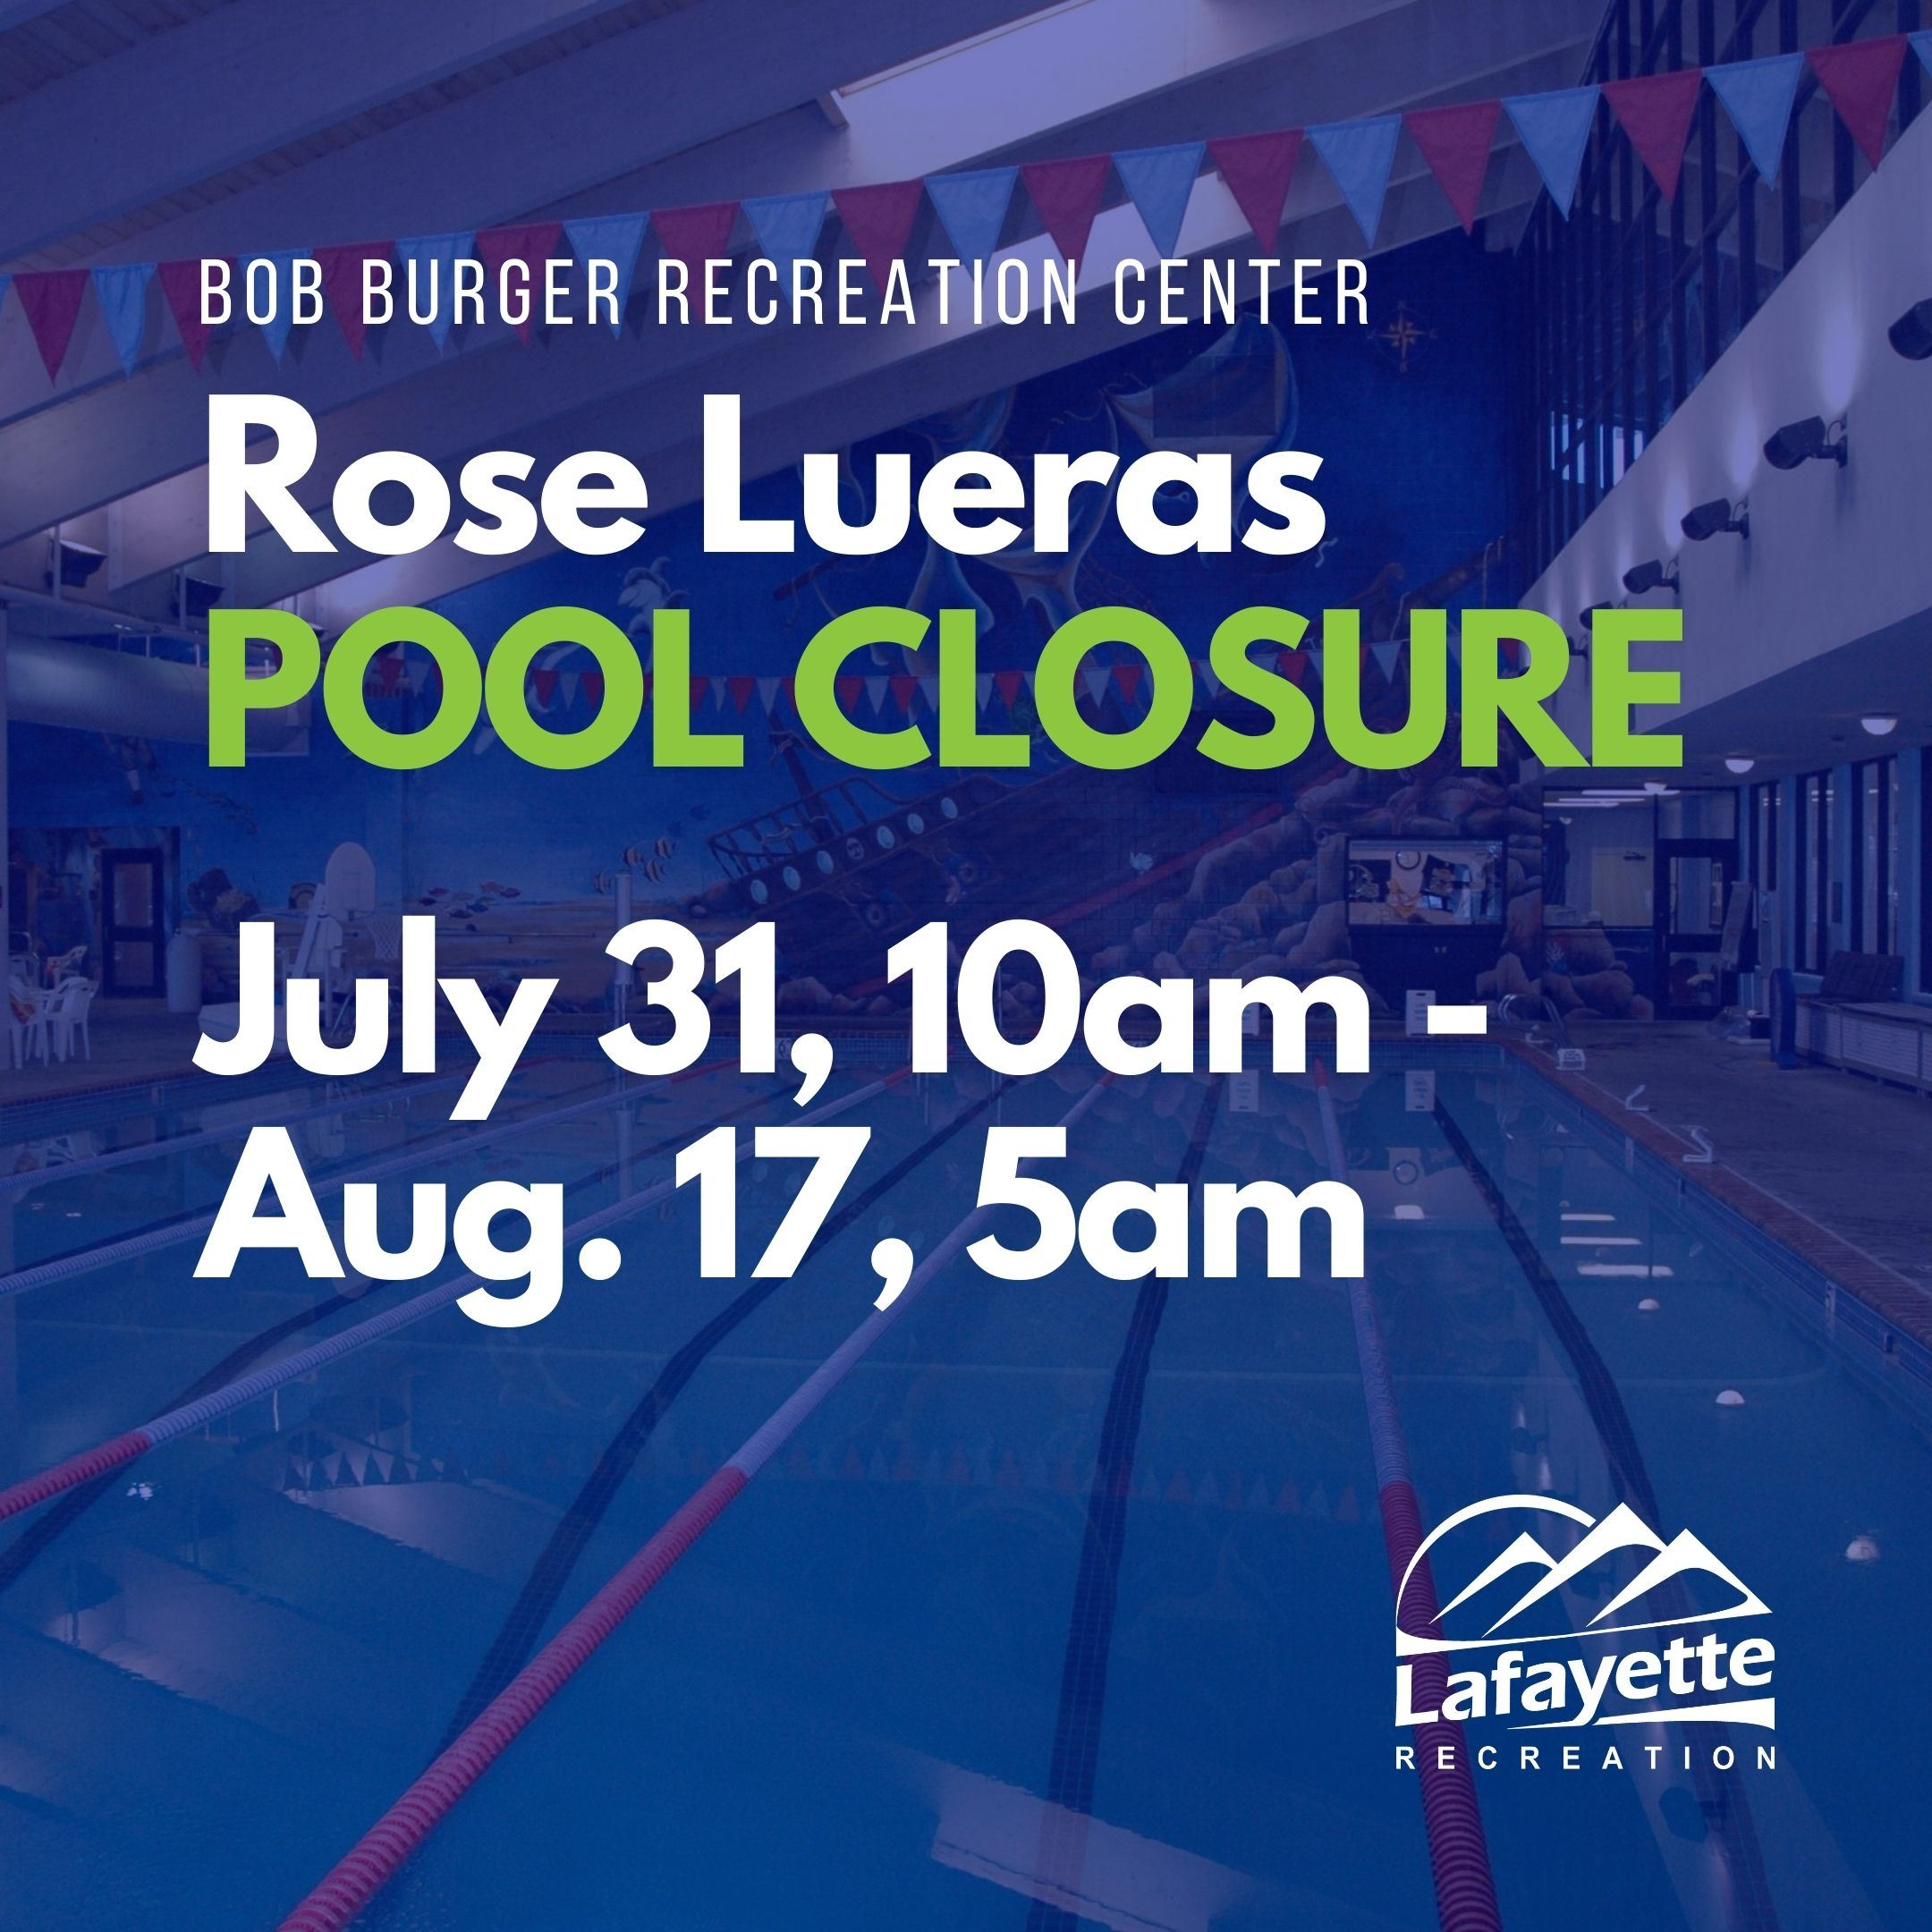 _lap pool closures-NF